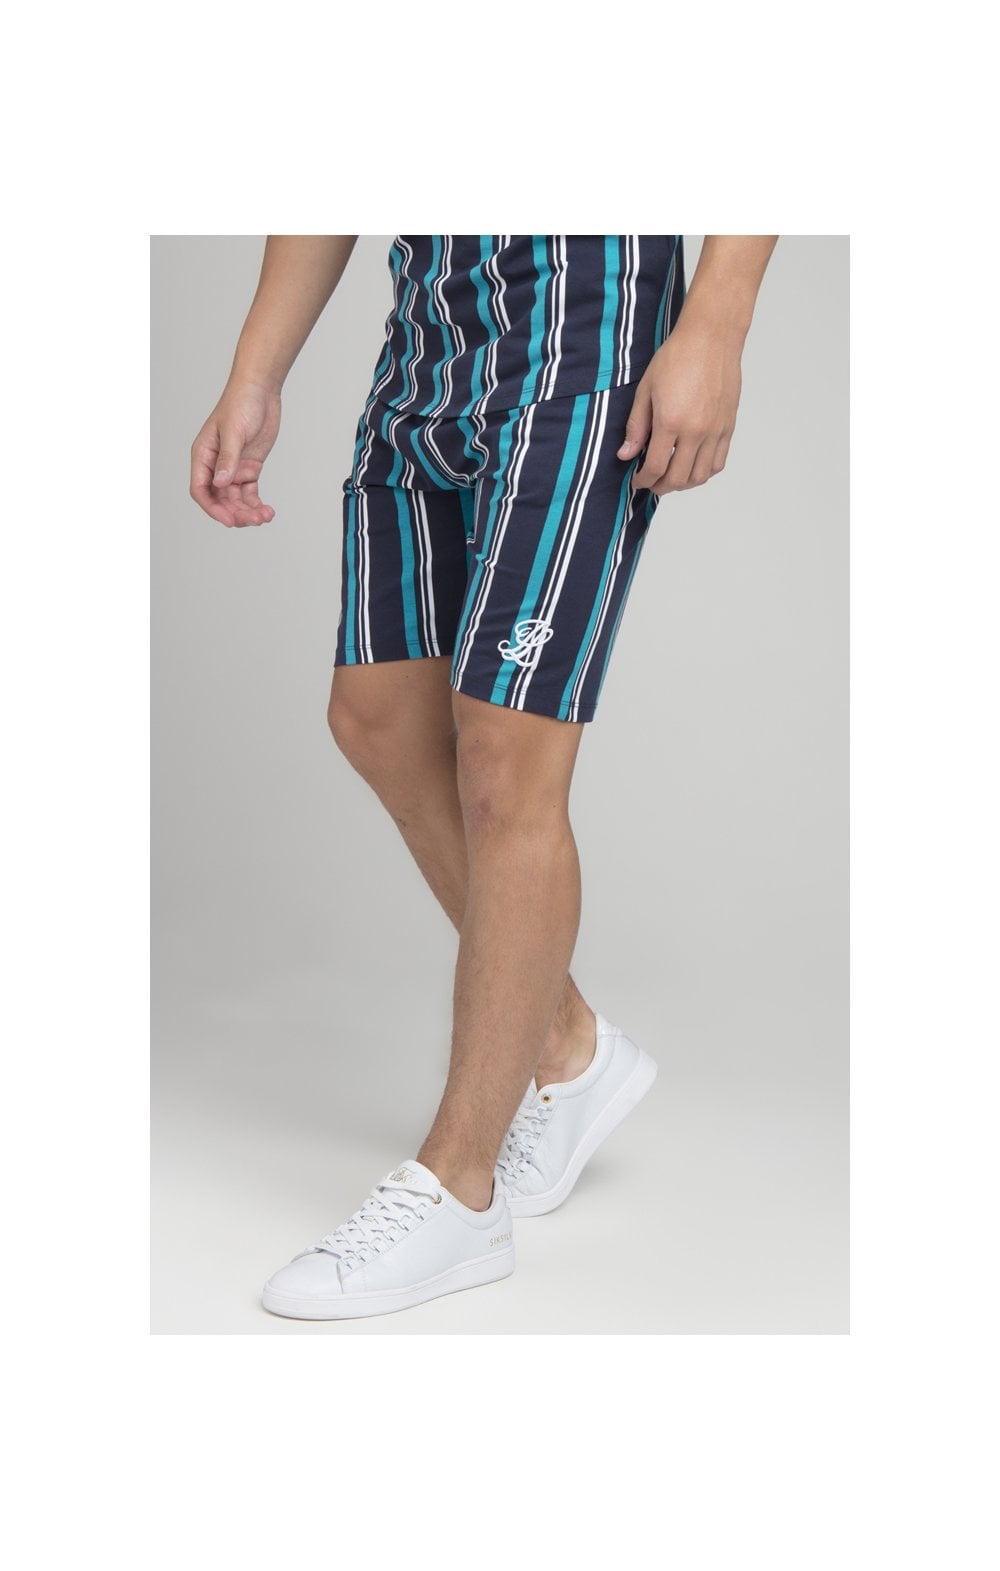 Illusive London Stripe Shorts - Navy & Teal